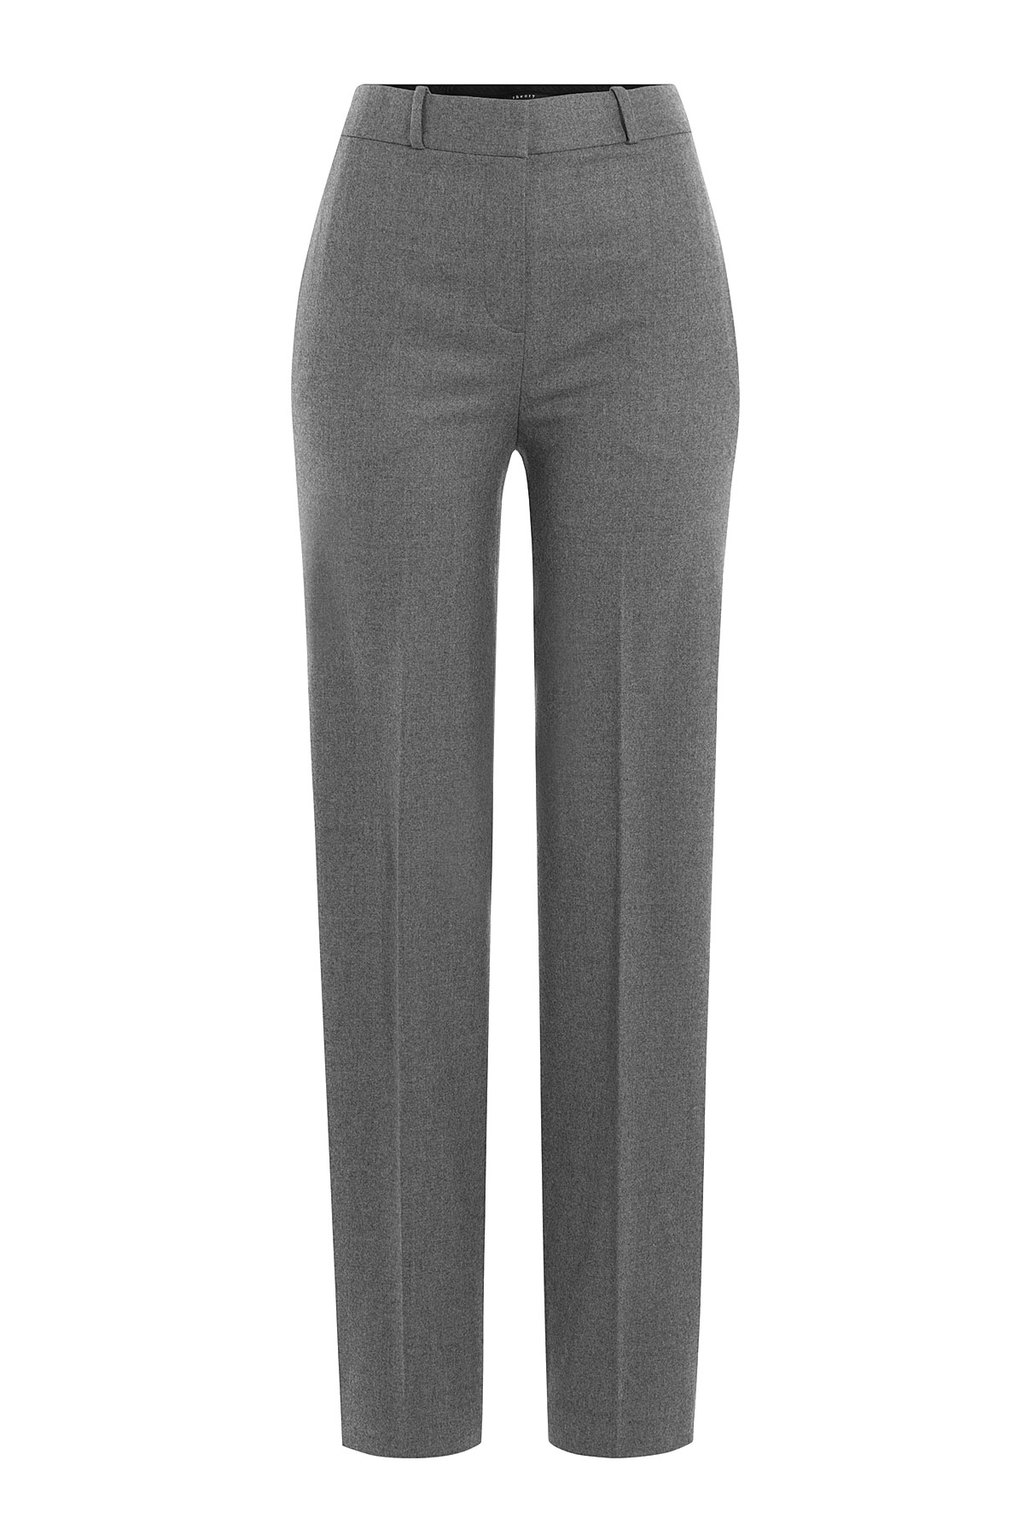 Wool Trousers Grey - length: standard; pattern: plain; pocket detail: pockets at the sides; waist: mid/regular rise; predominant colour: mid grey; occasions: work, creative work; fibres: wool - mix; fit: straight leg; pattern type: fabric; texture group: woven light midweight; style: standard; season: a/w 2015; wardrobe: basic